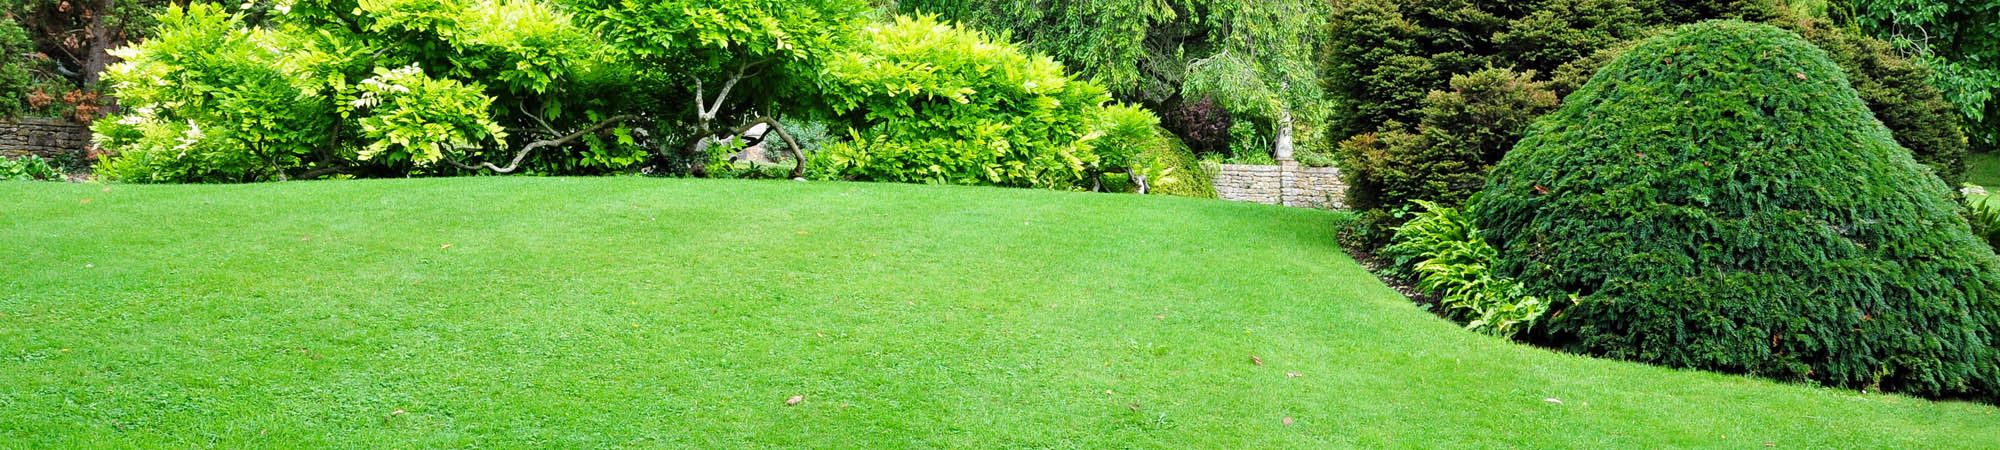 Pest-Free Lawn Maintained By Lawn Insect Control In Edmond, OK